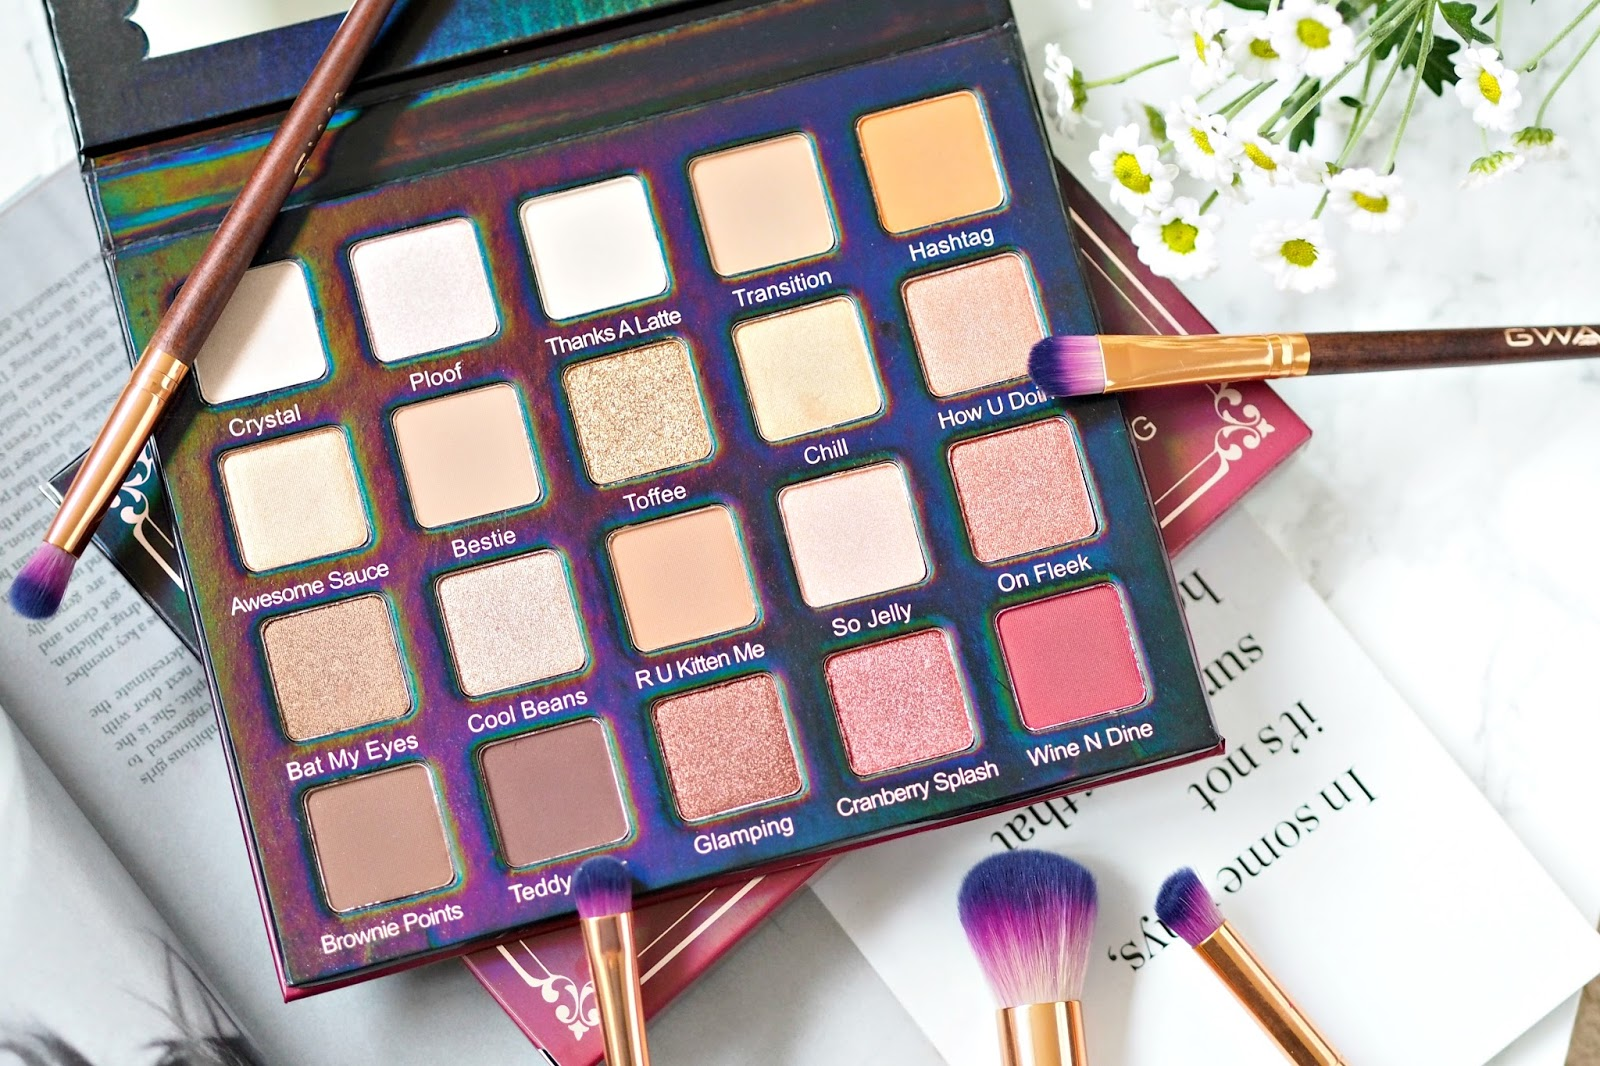 Violet Voss Holy Grail palette Review and Swatches UK